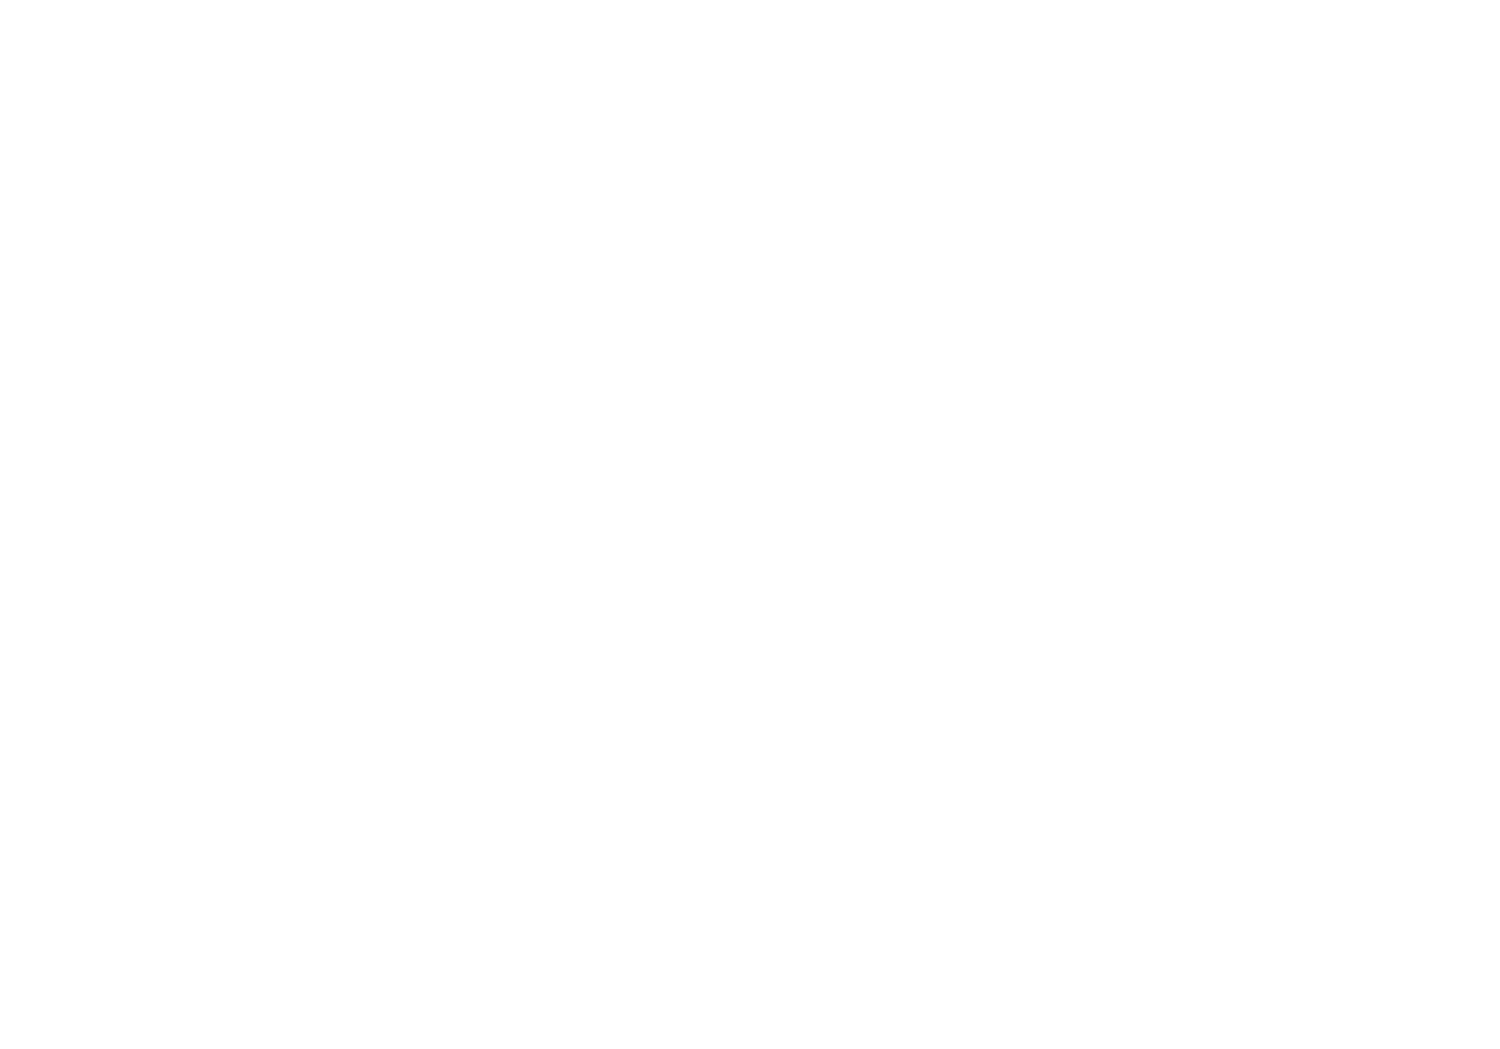 Top Dawg Sausages